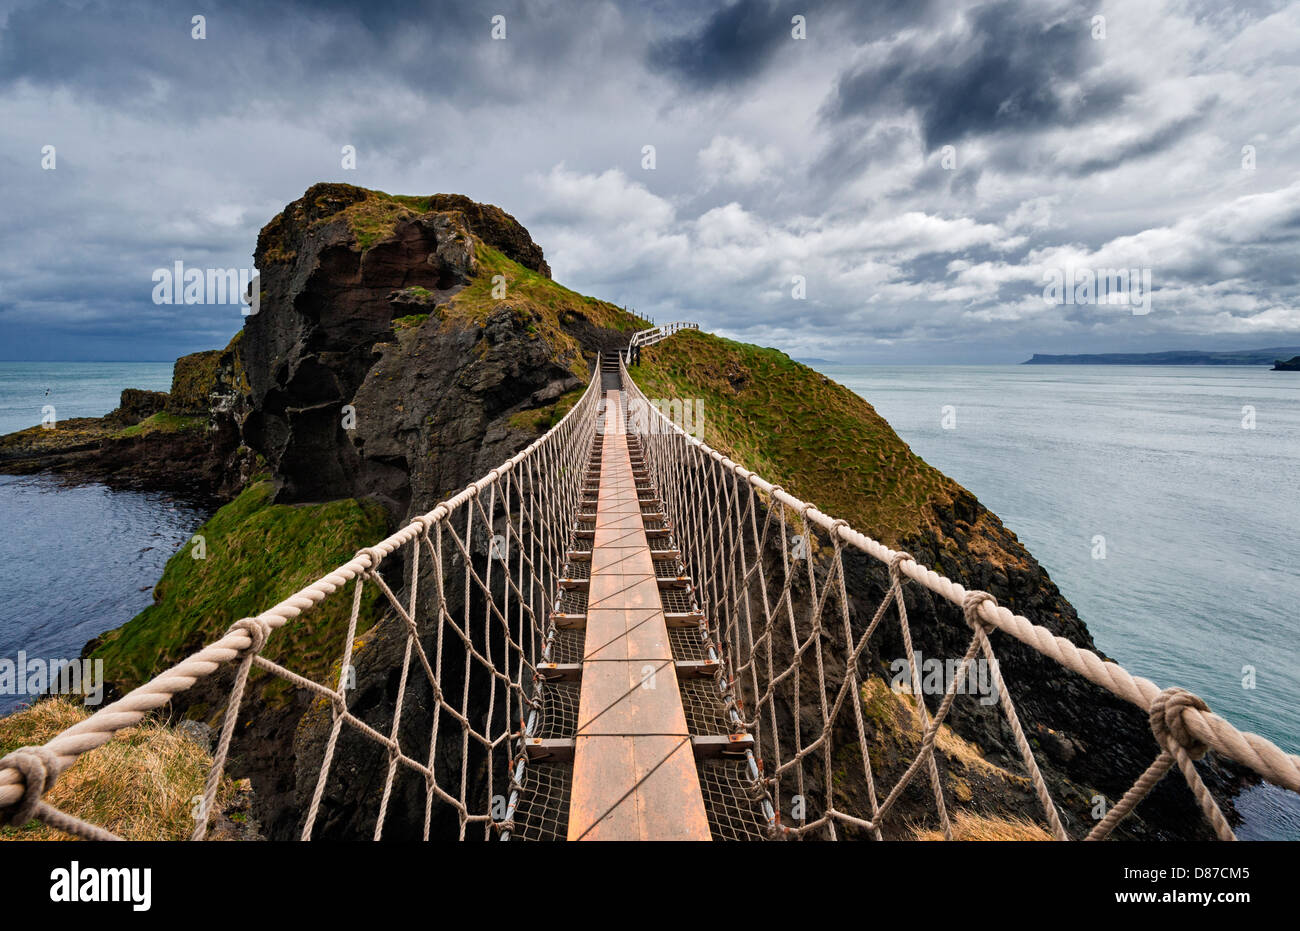 Carrick-a-Rede rope bridge. - Stock Image